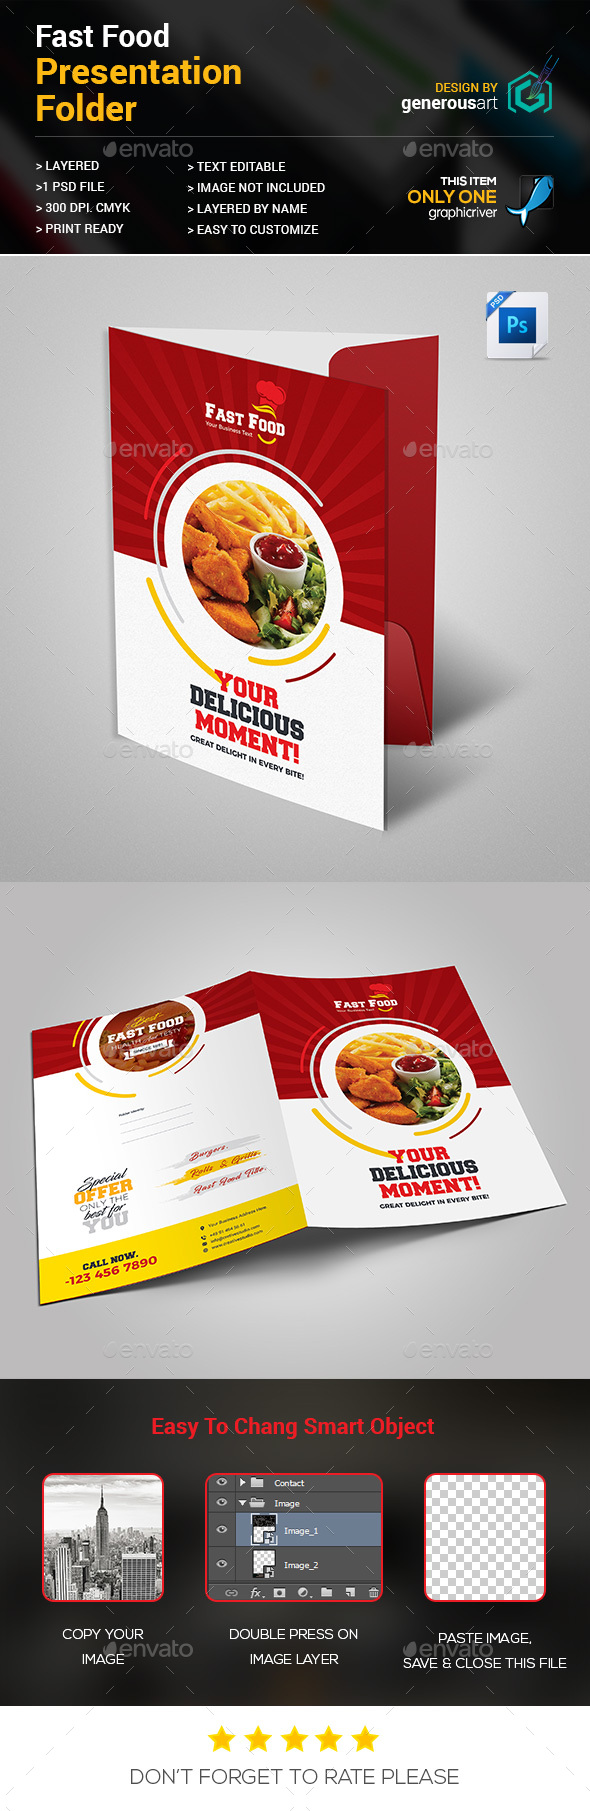 Fast Food Presentation Folder - Stationery Print Templates